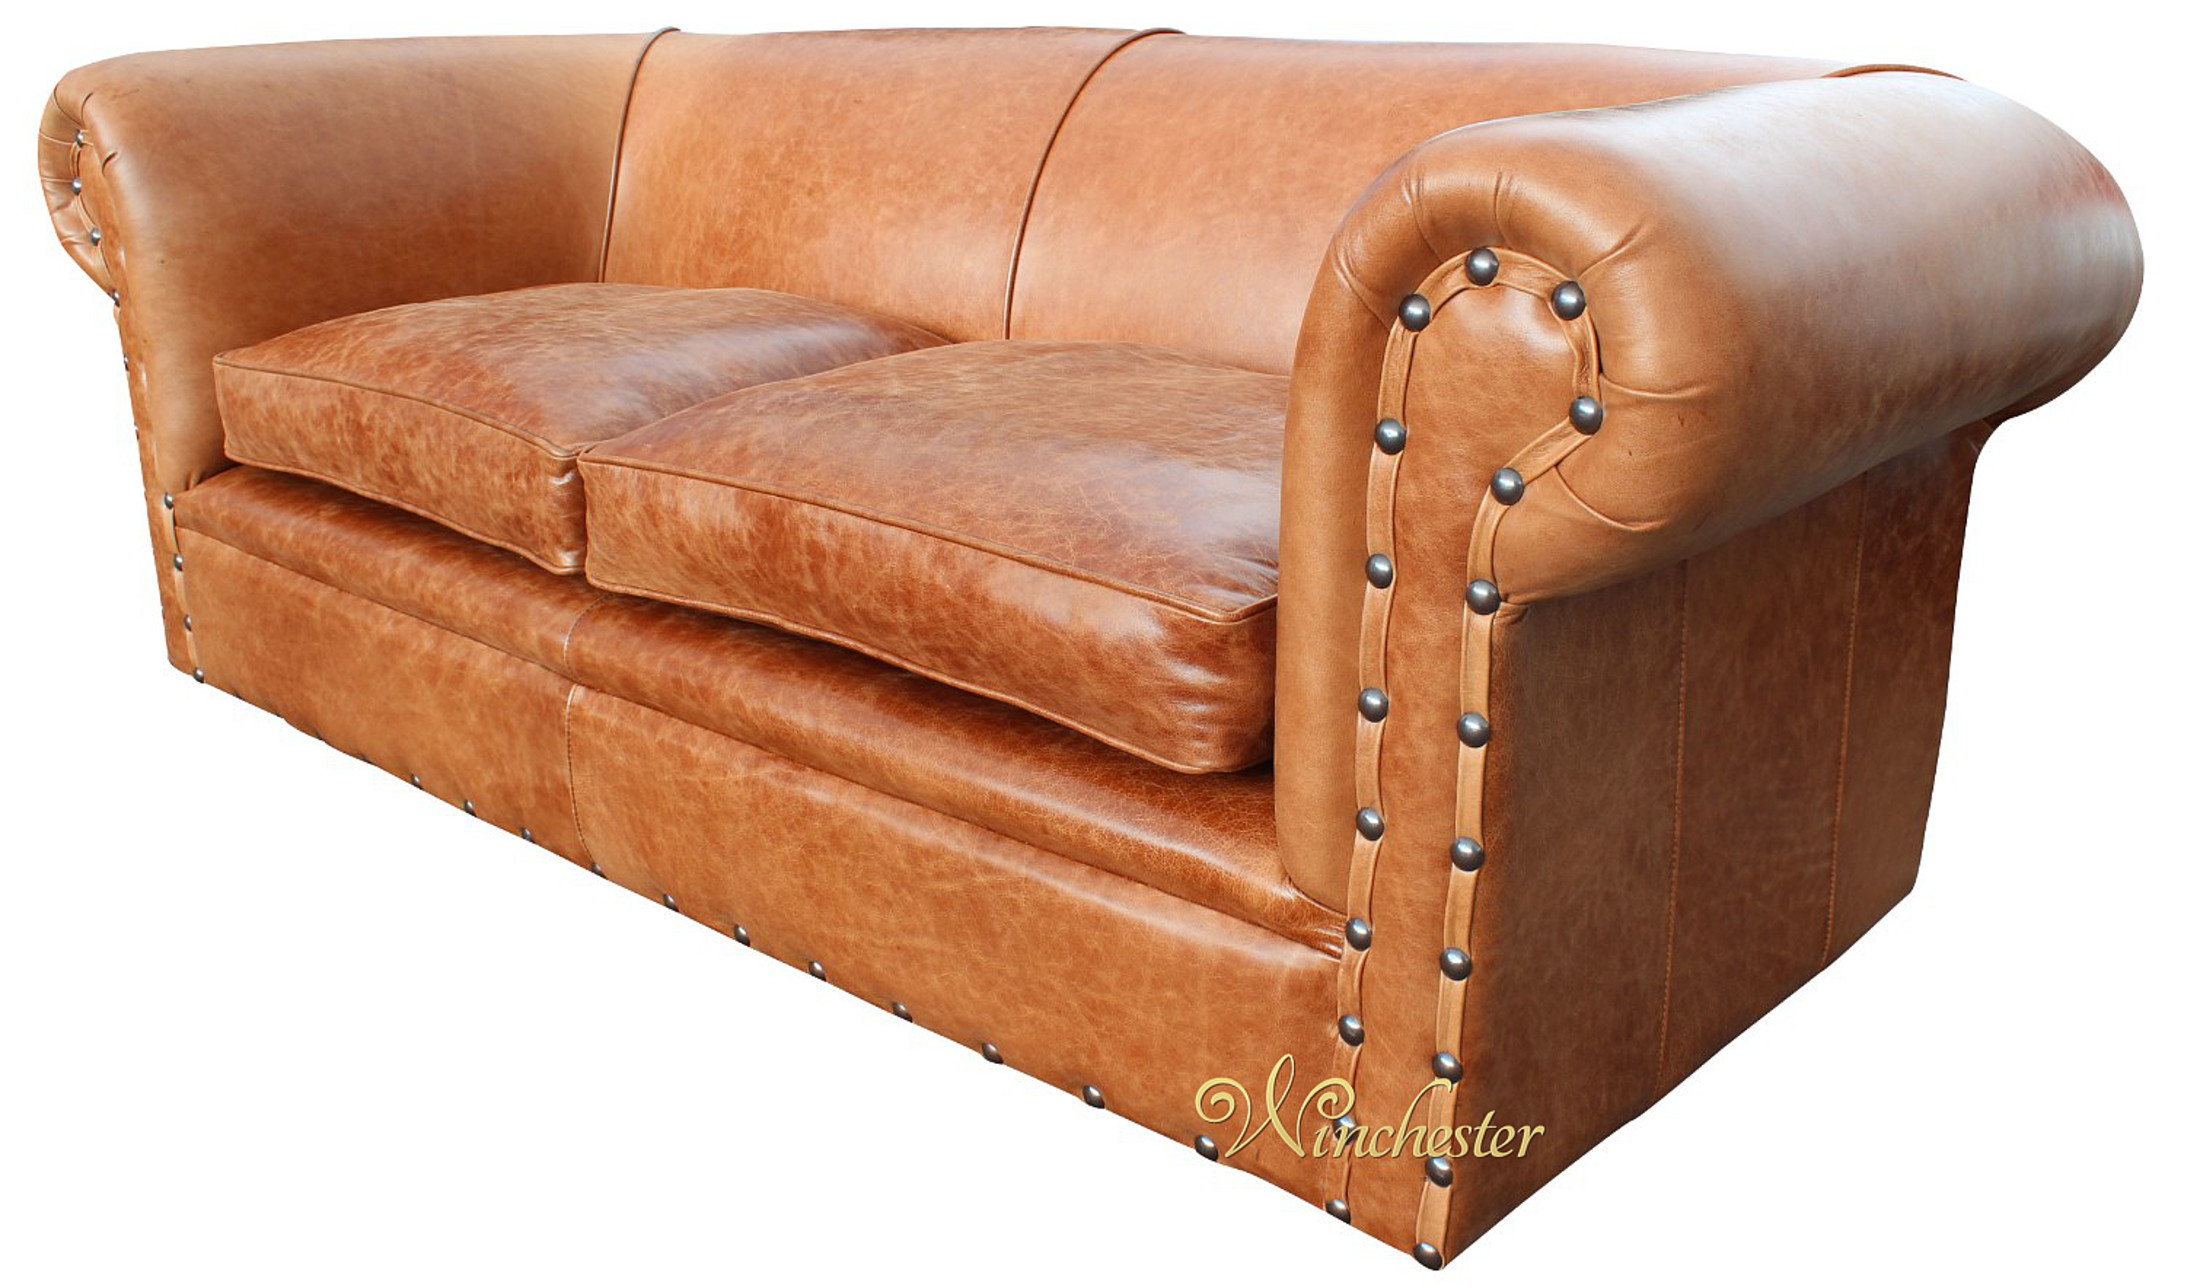 ... Chesterfield 3 Seater Sofa Settee Decor Saddle Wc ...